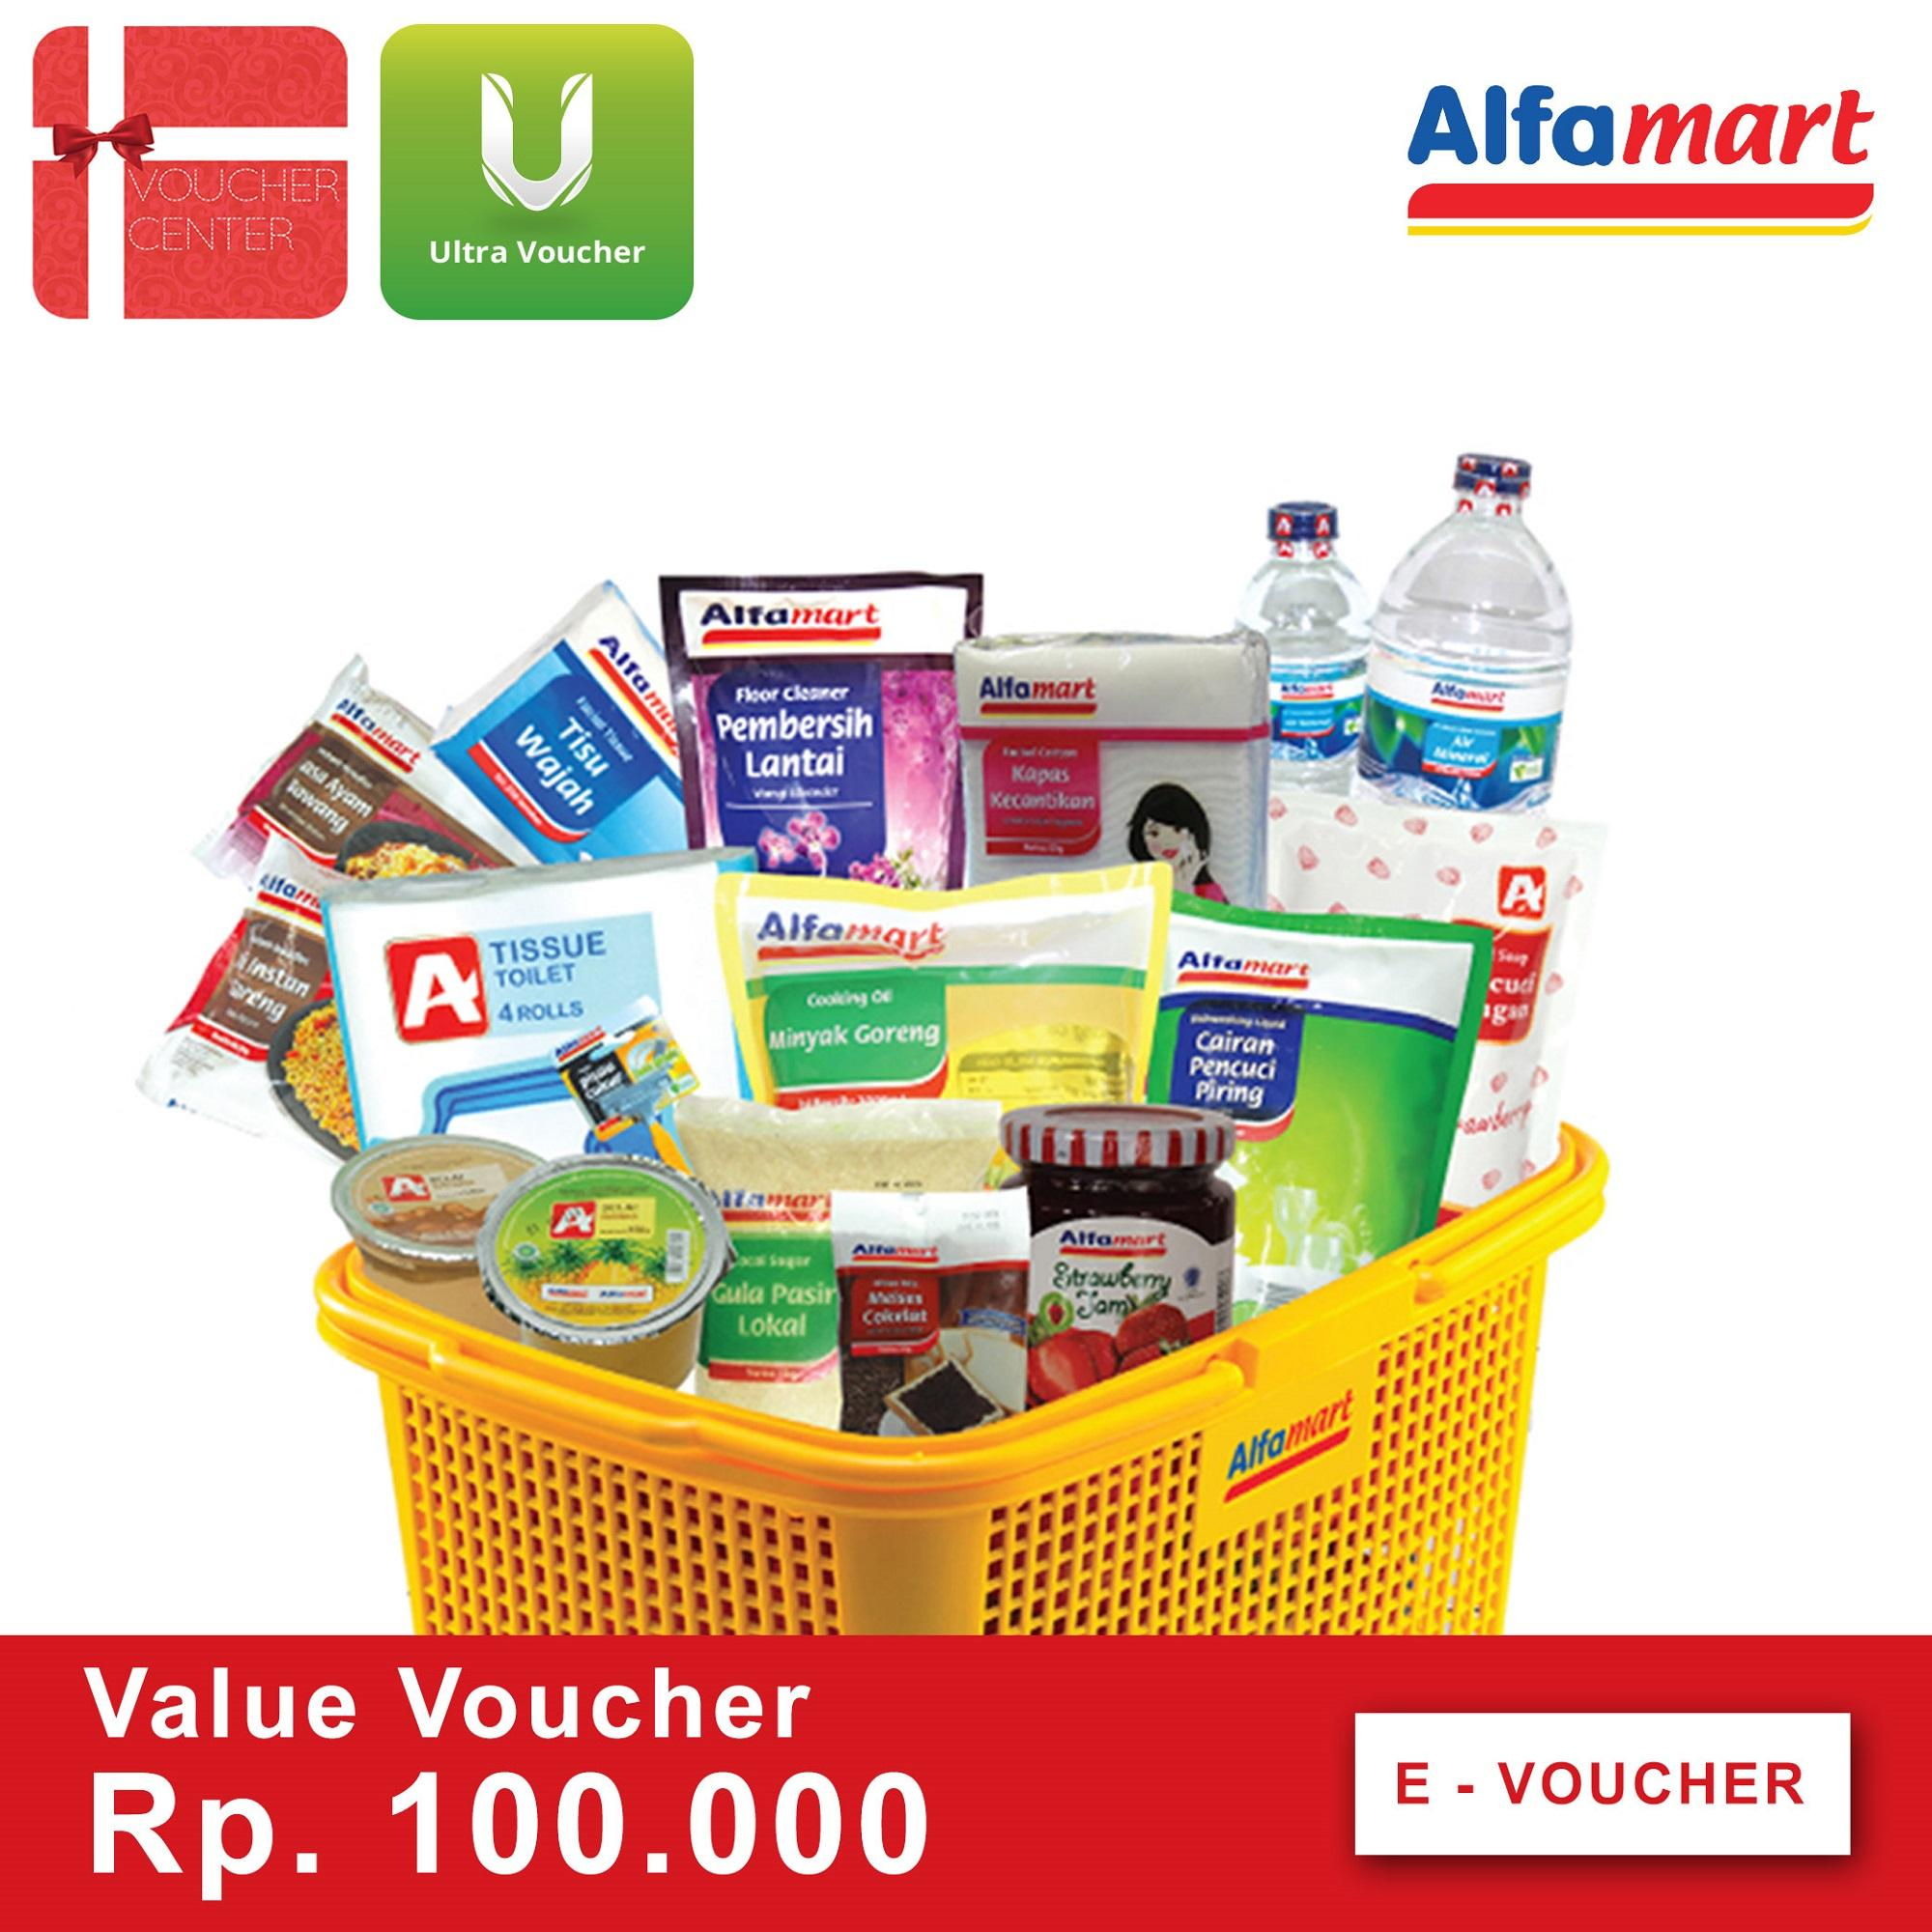 Voucher Alfamart Rp 100.000 - Digital Code By I-Voucher Center.